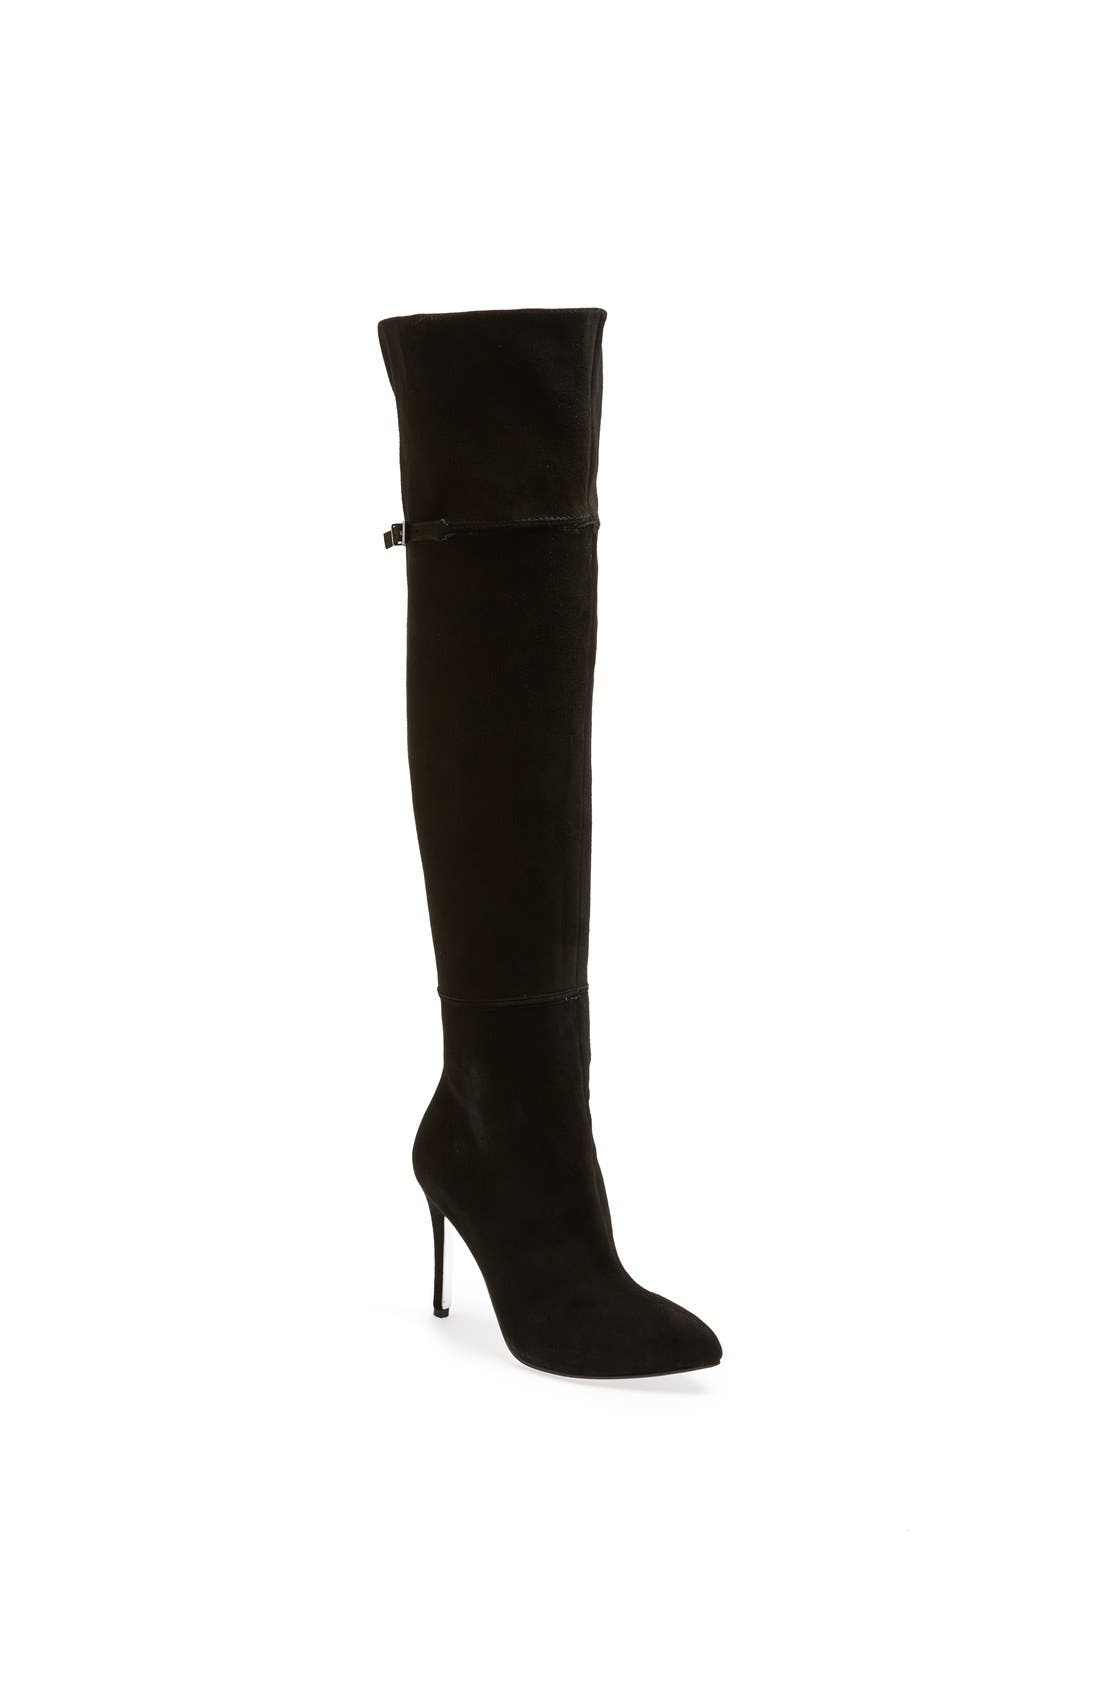 'Cassie' Over the Knee Boot,                         Main,                         color, 001